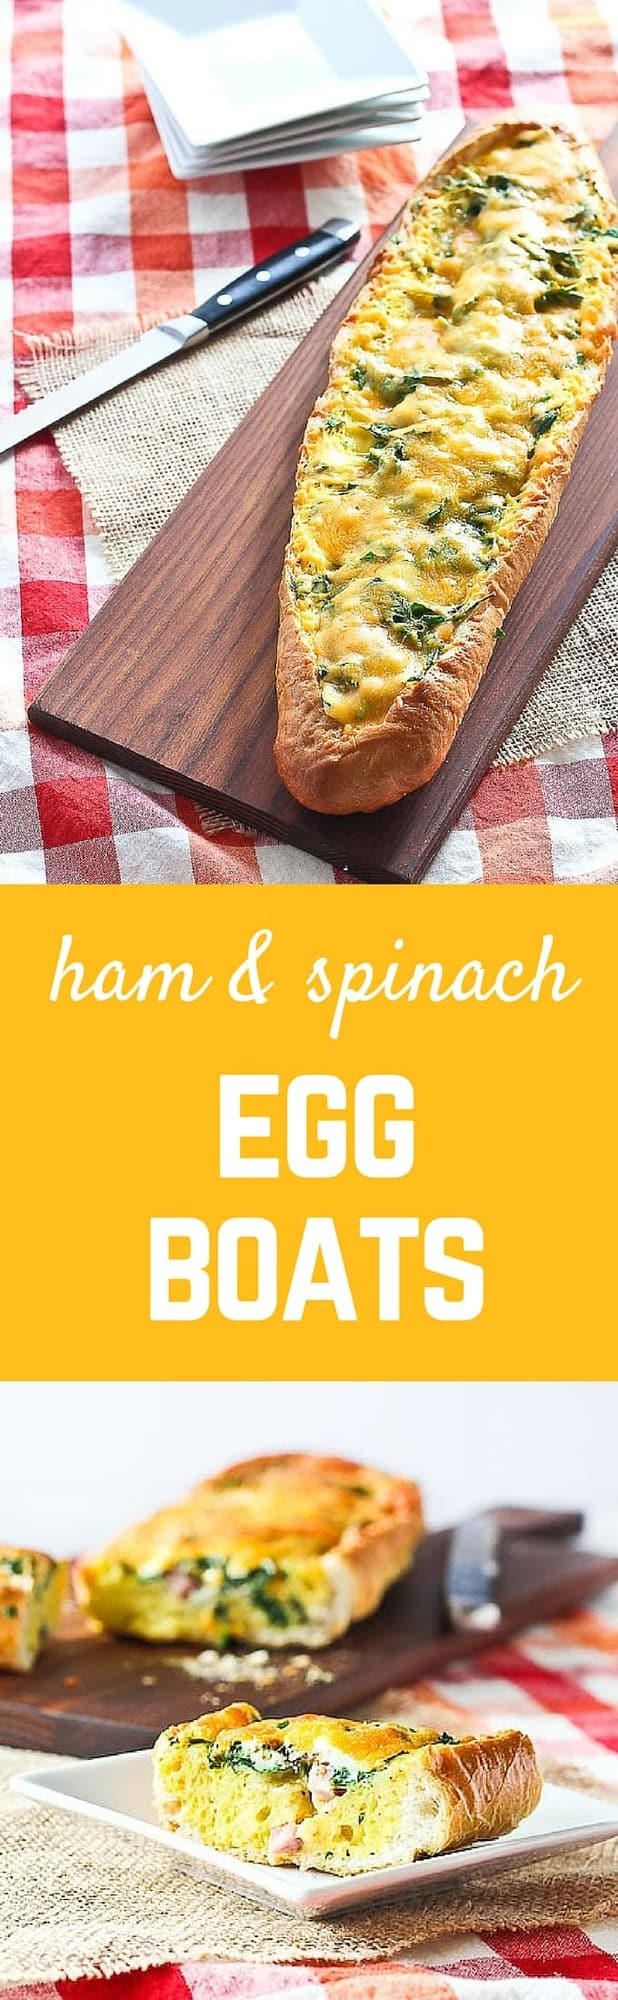 Take your egg casseroles outside the square pan with thisfun egg boat recipe. Crunchy bread holds a flavorful and irresistible egg filling. These will transform brunch! Get the easy recipe on RachelCooks.com!